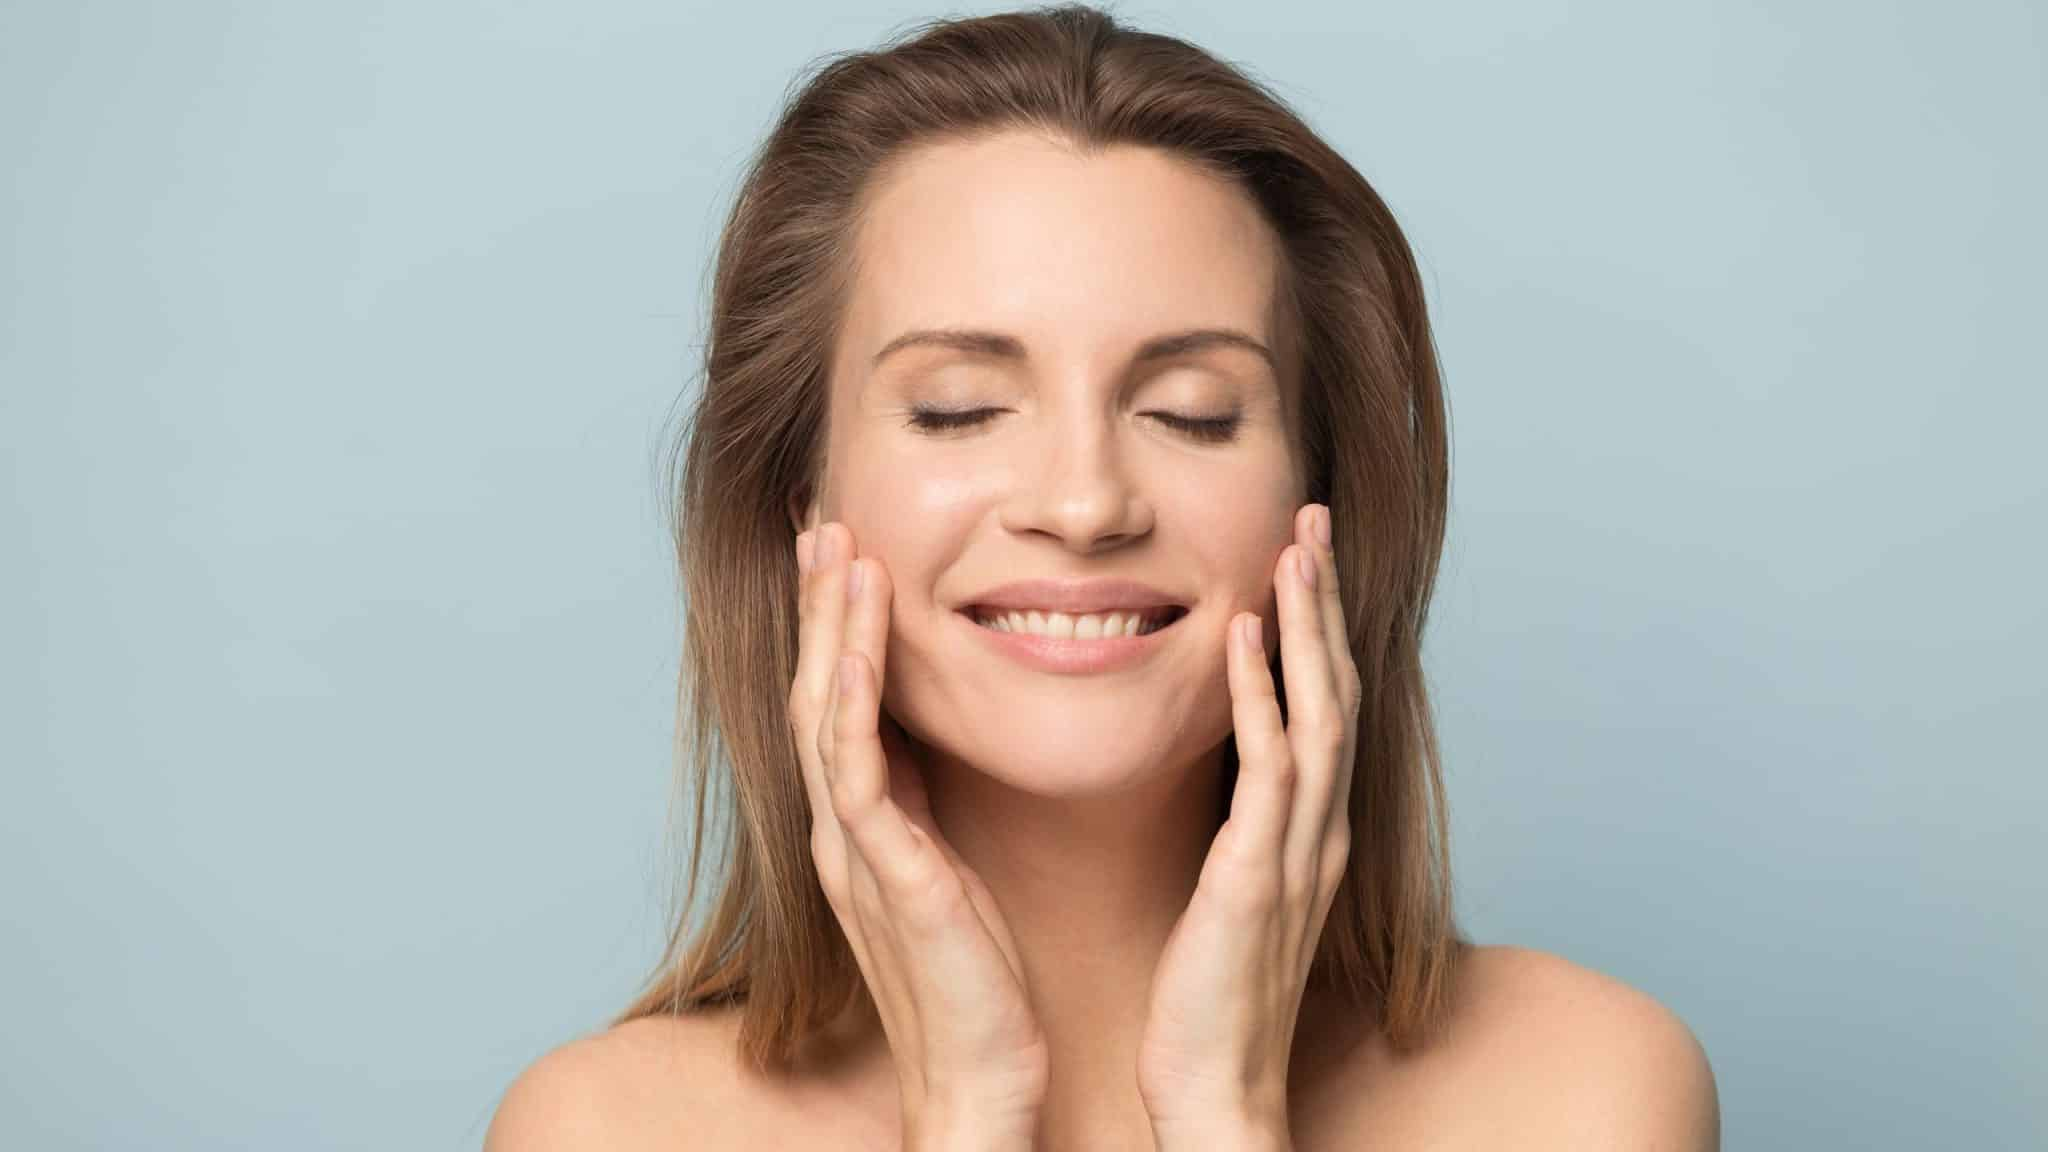 Symptoms Of Sensitive Skin And How To Treat Them